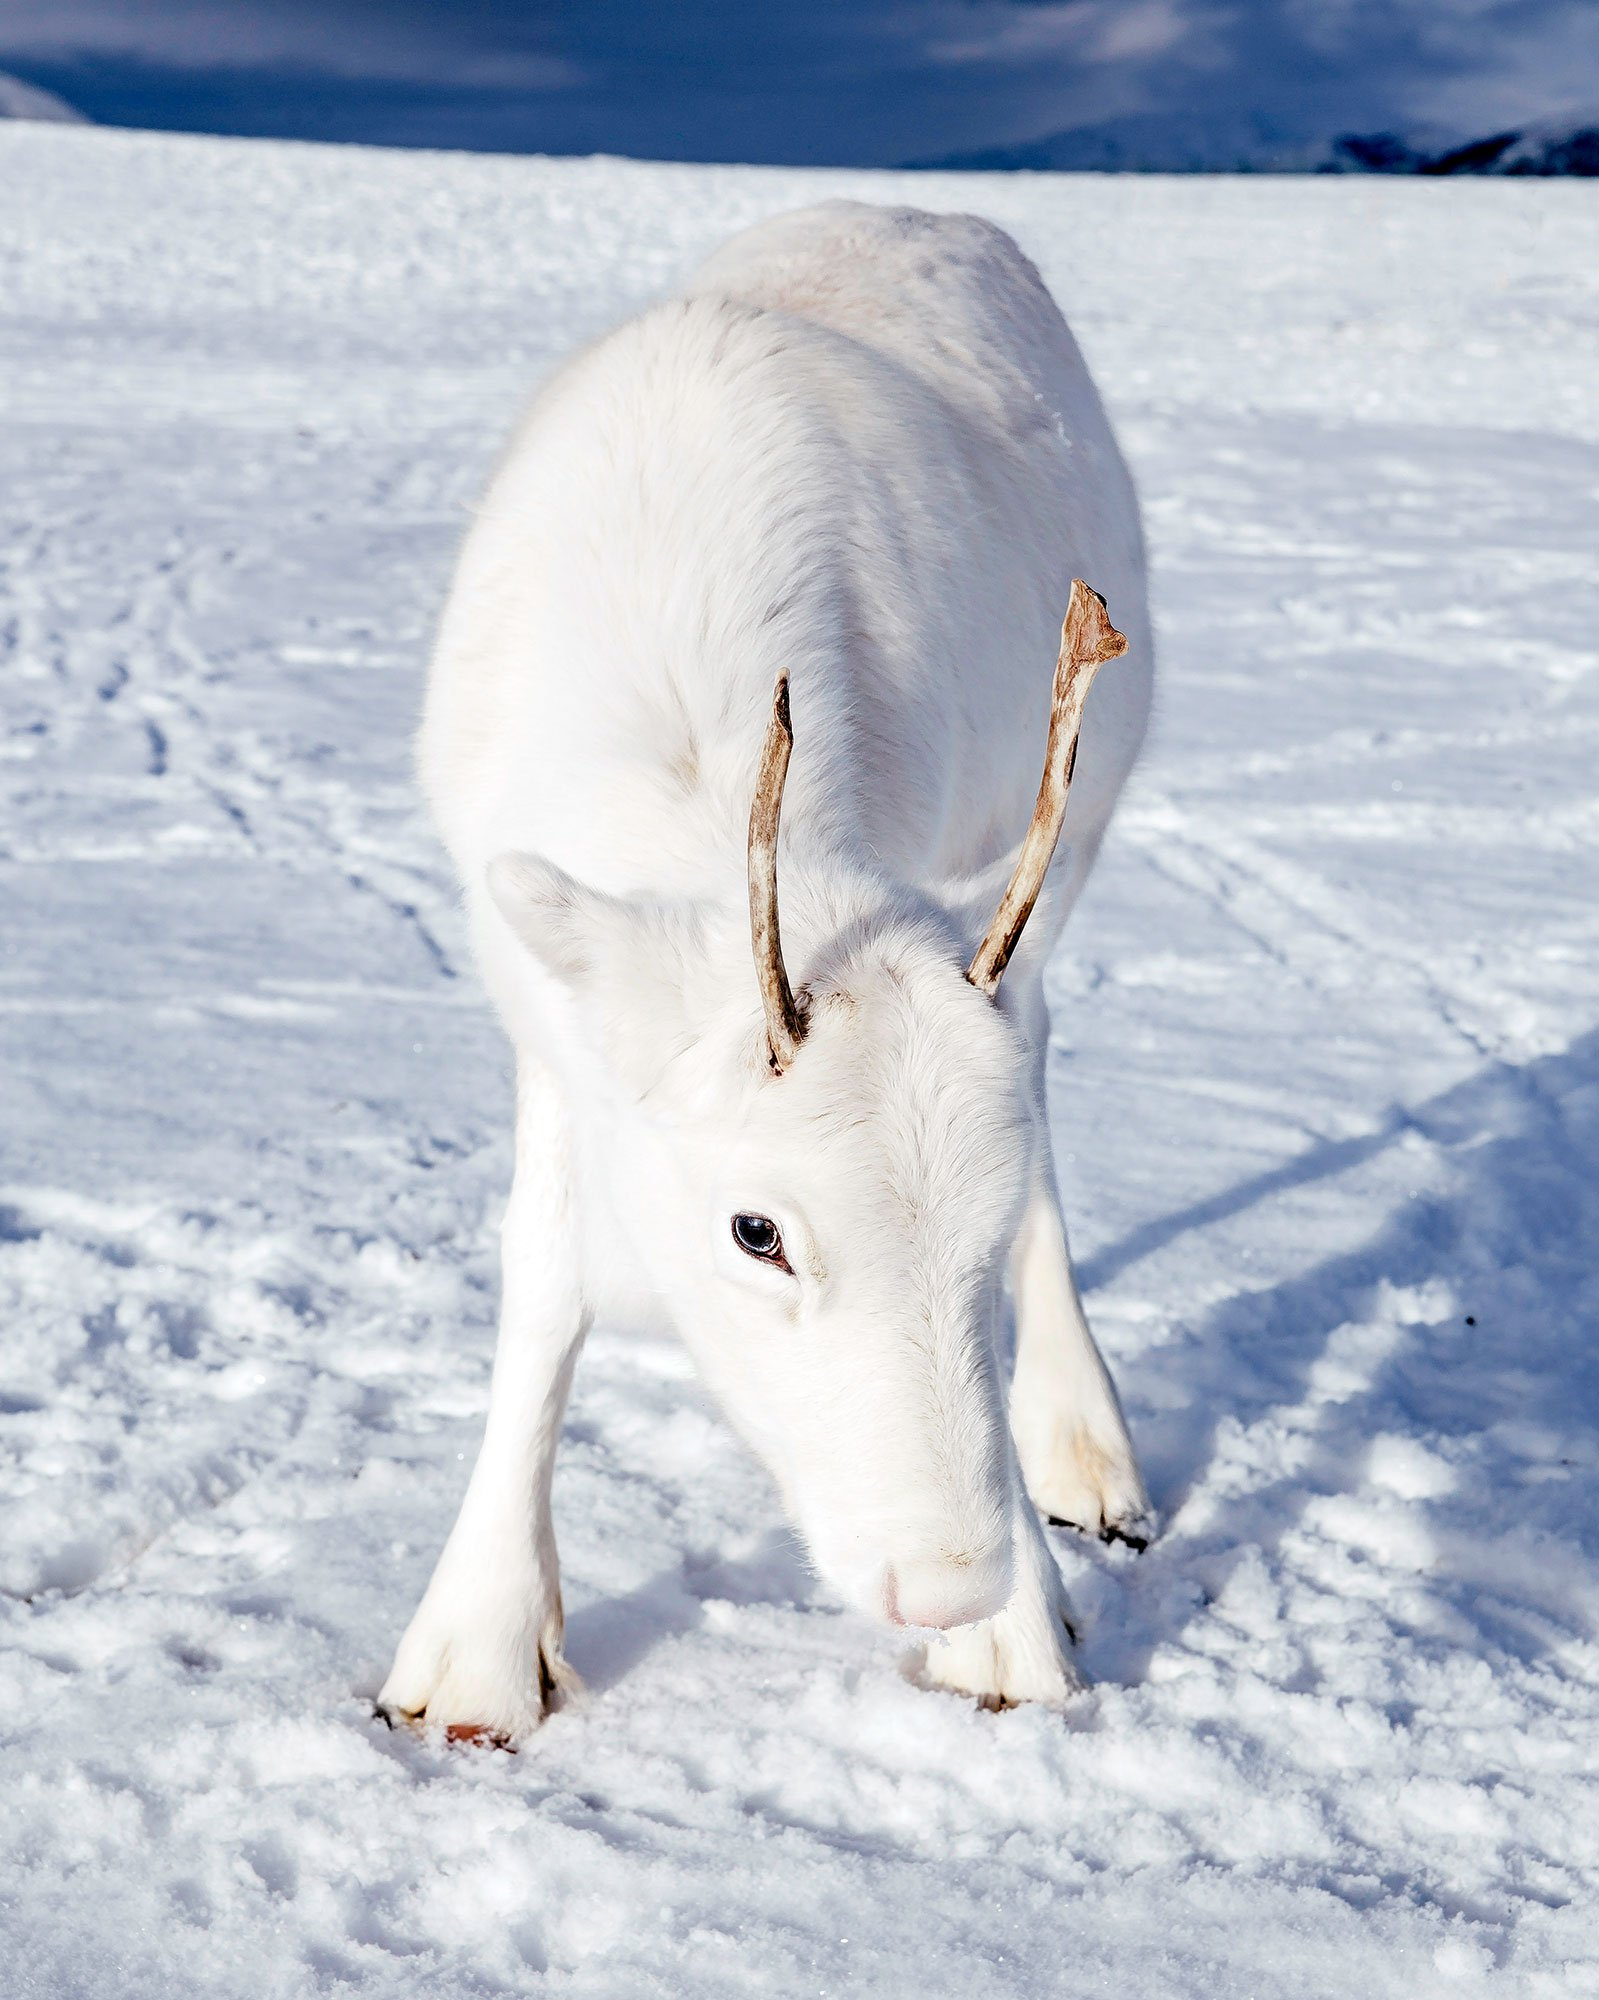 Rudolph, Who? Baby Snow-Colored Reindeer Is Almost Too Magical to Be Real